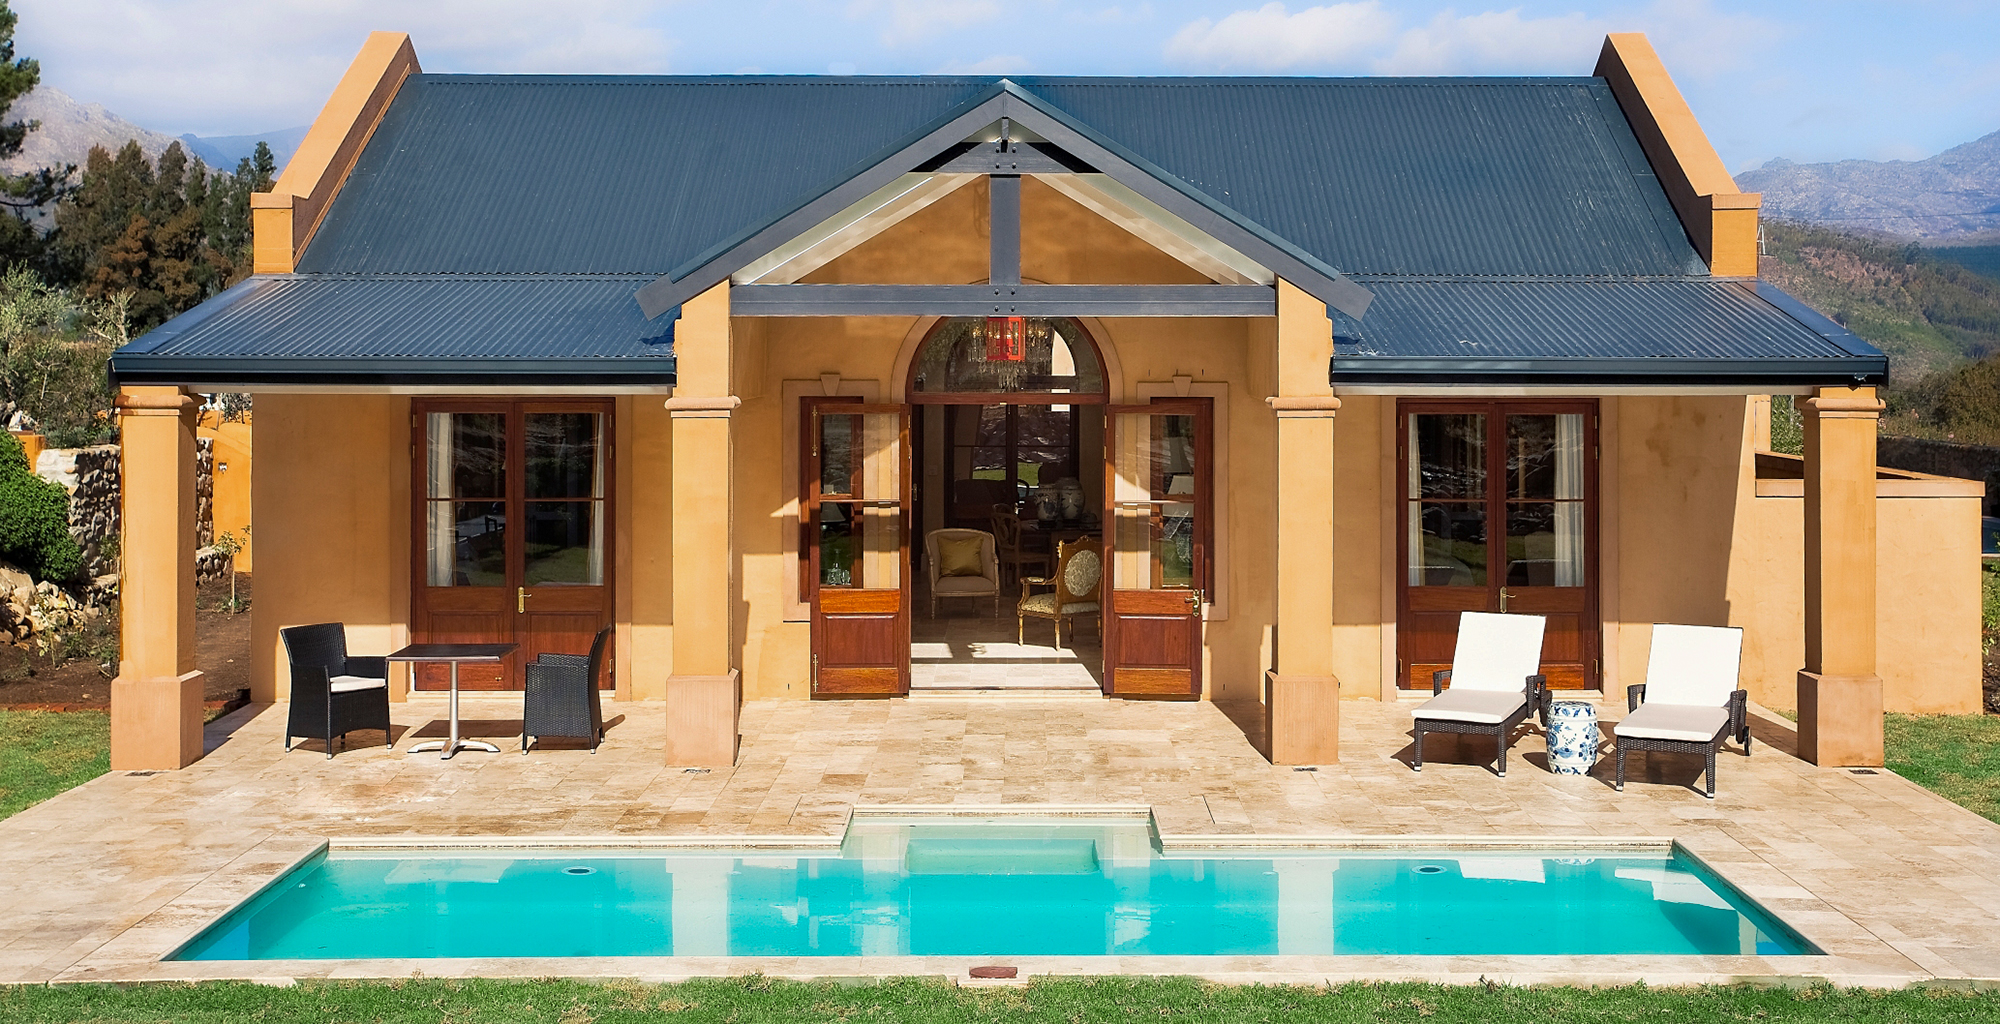 South-Africa-La-Residence-Exterior-Pool